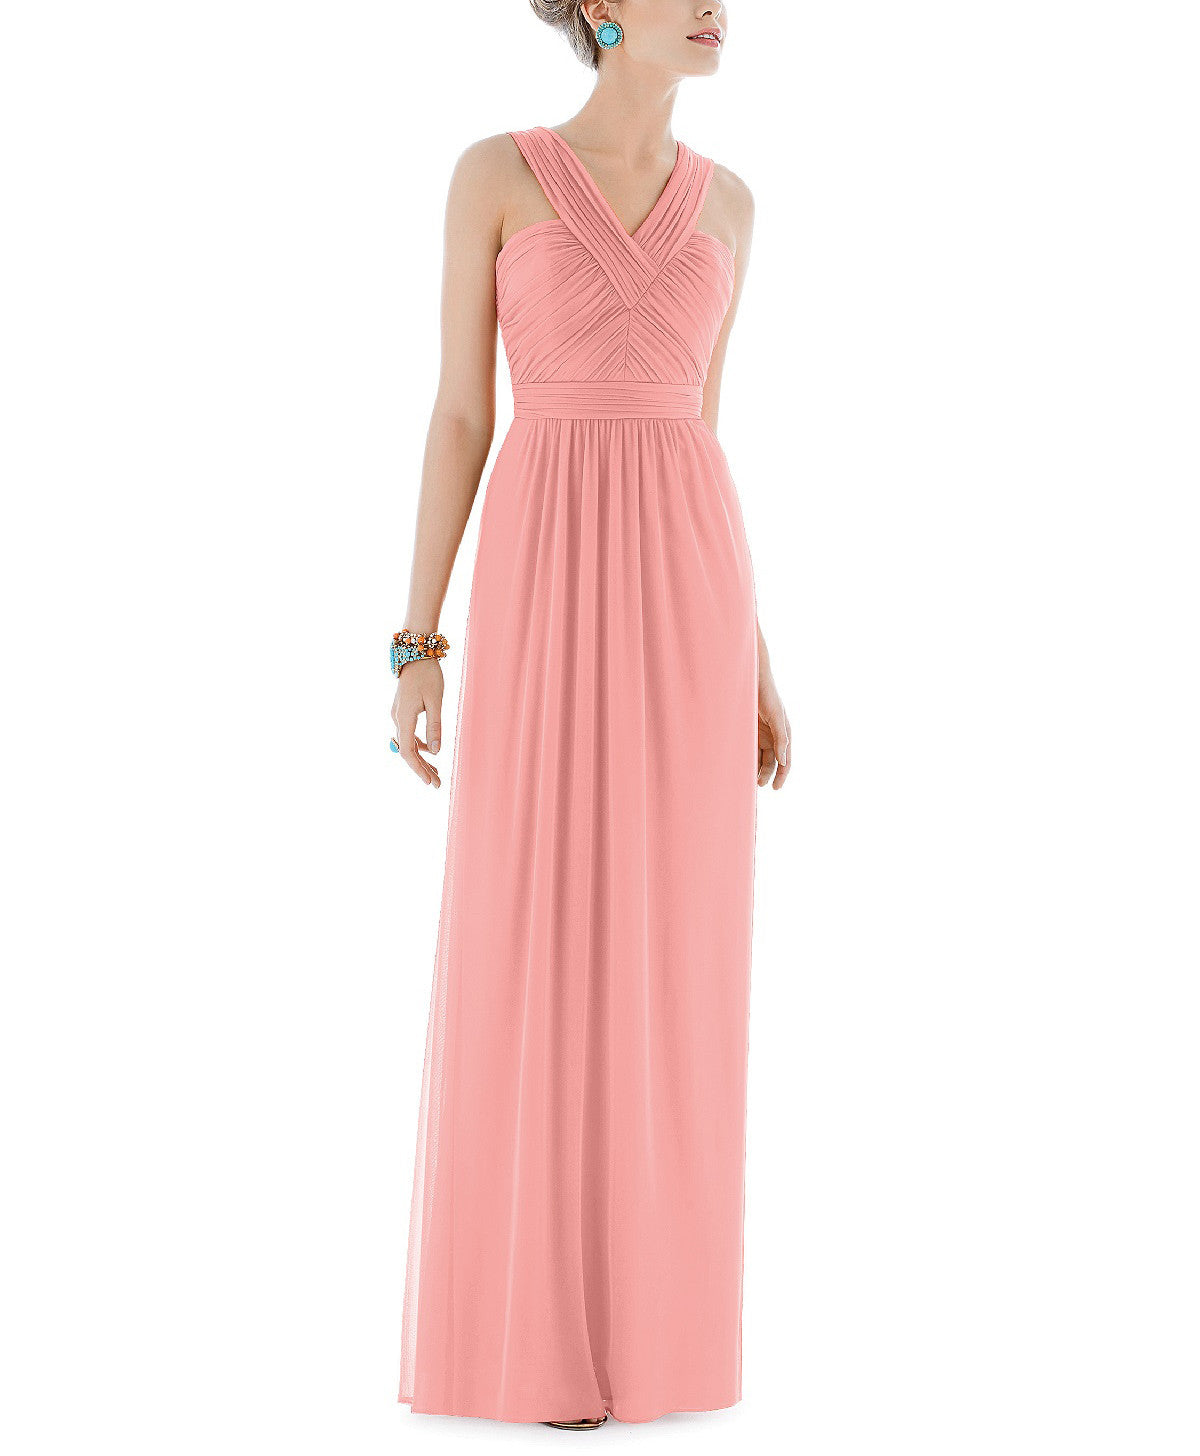 Alfred sung style d678 bridesmaid dress brideside alfred sung style d678 ombrellifo Choice Image